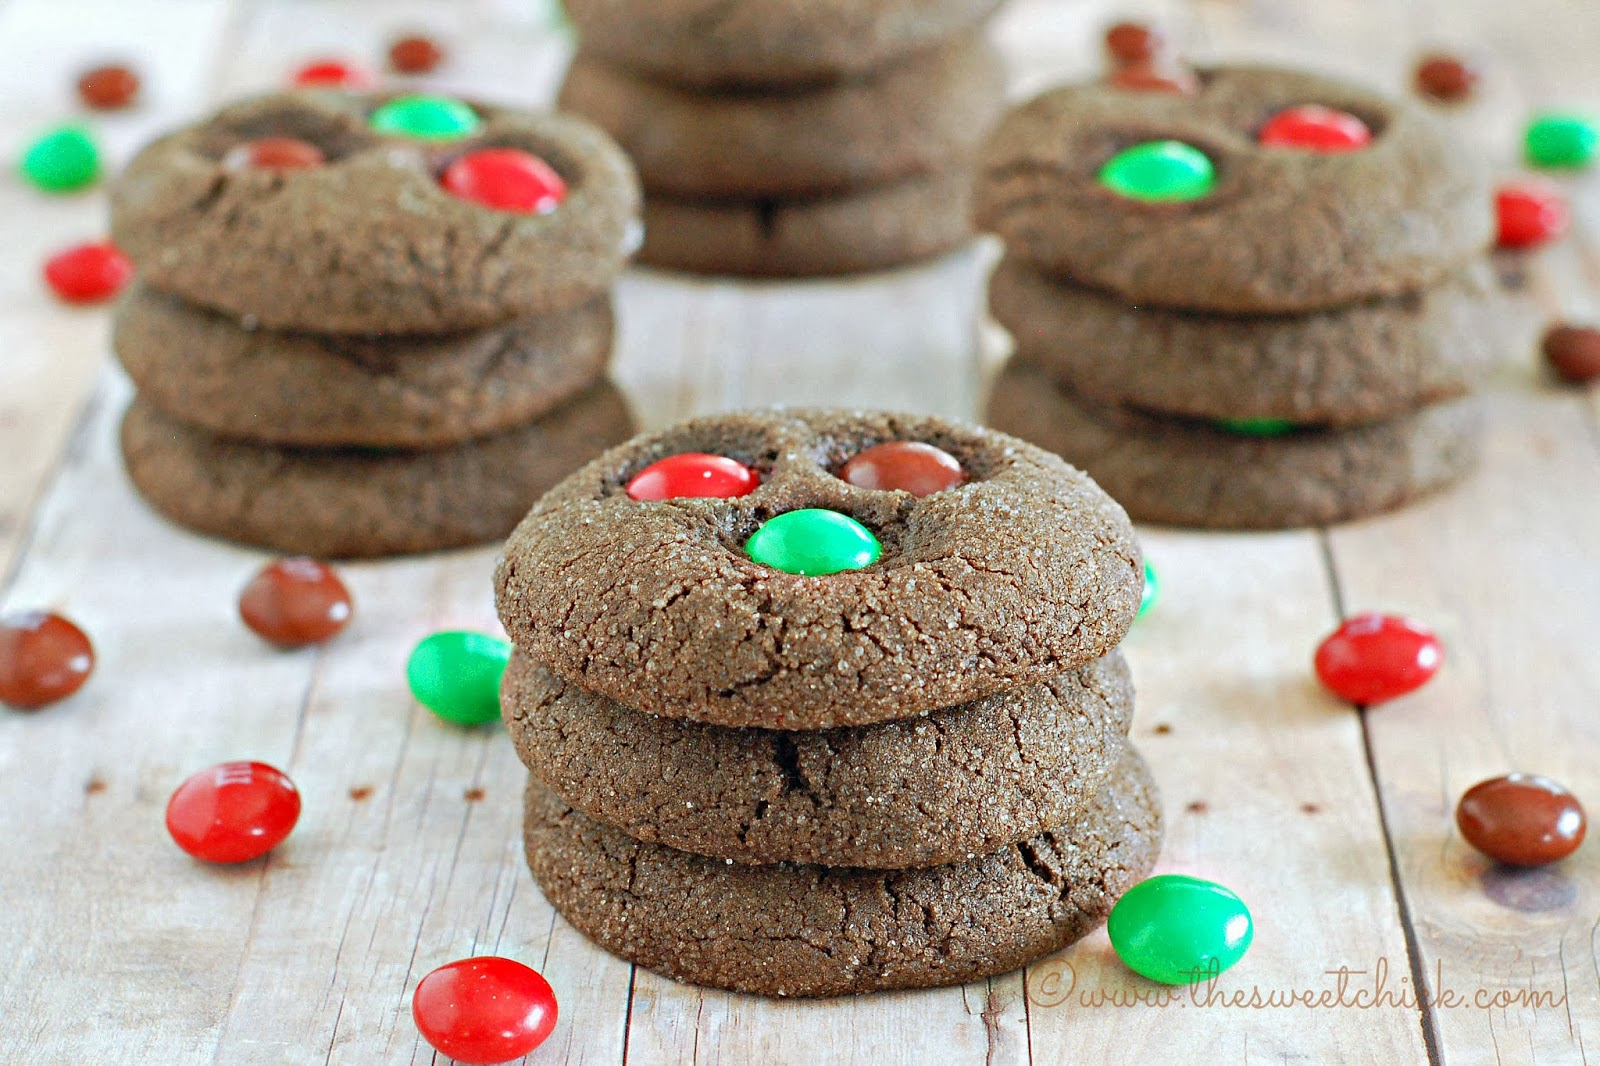 ... .com/2013/11/chewy-dark-chocolate-gingerbread-cookies.html